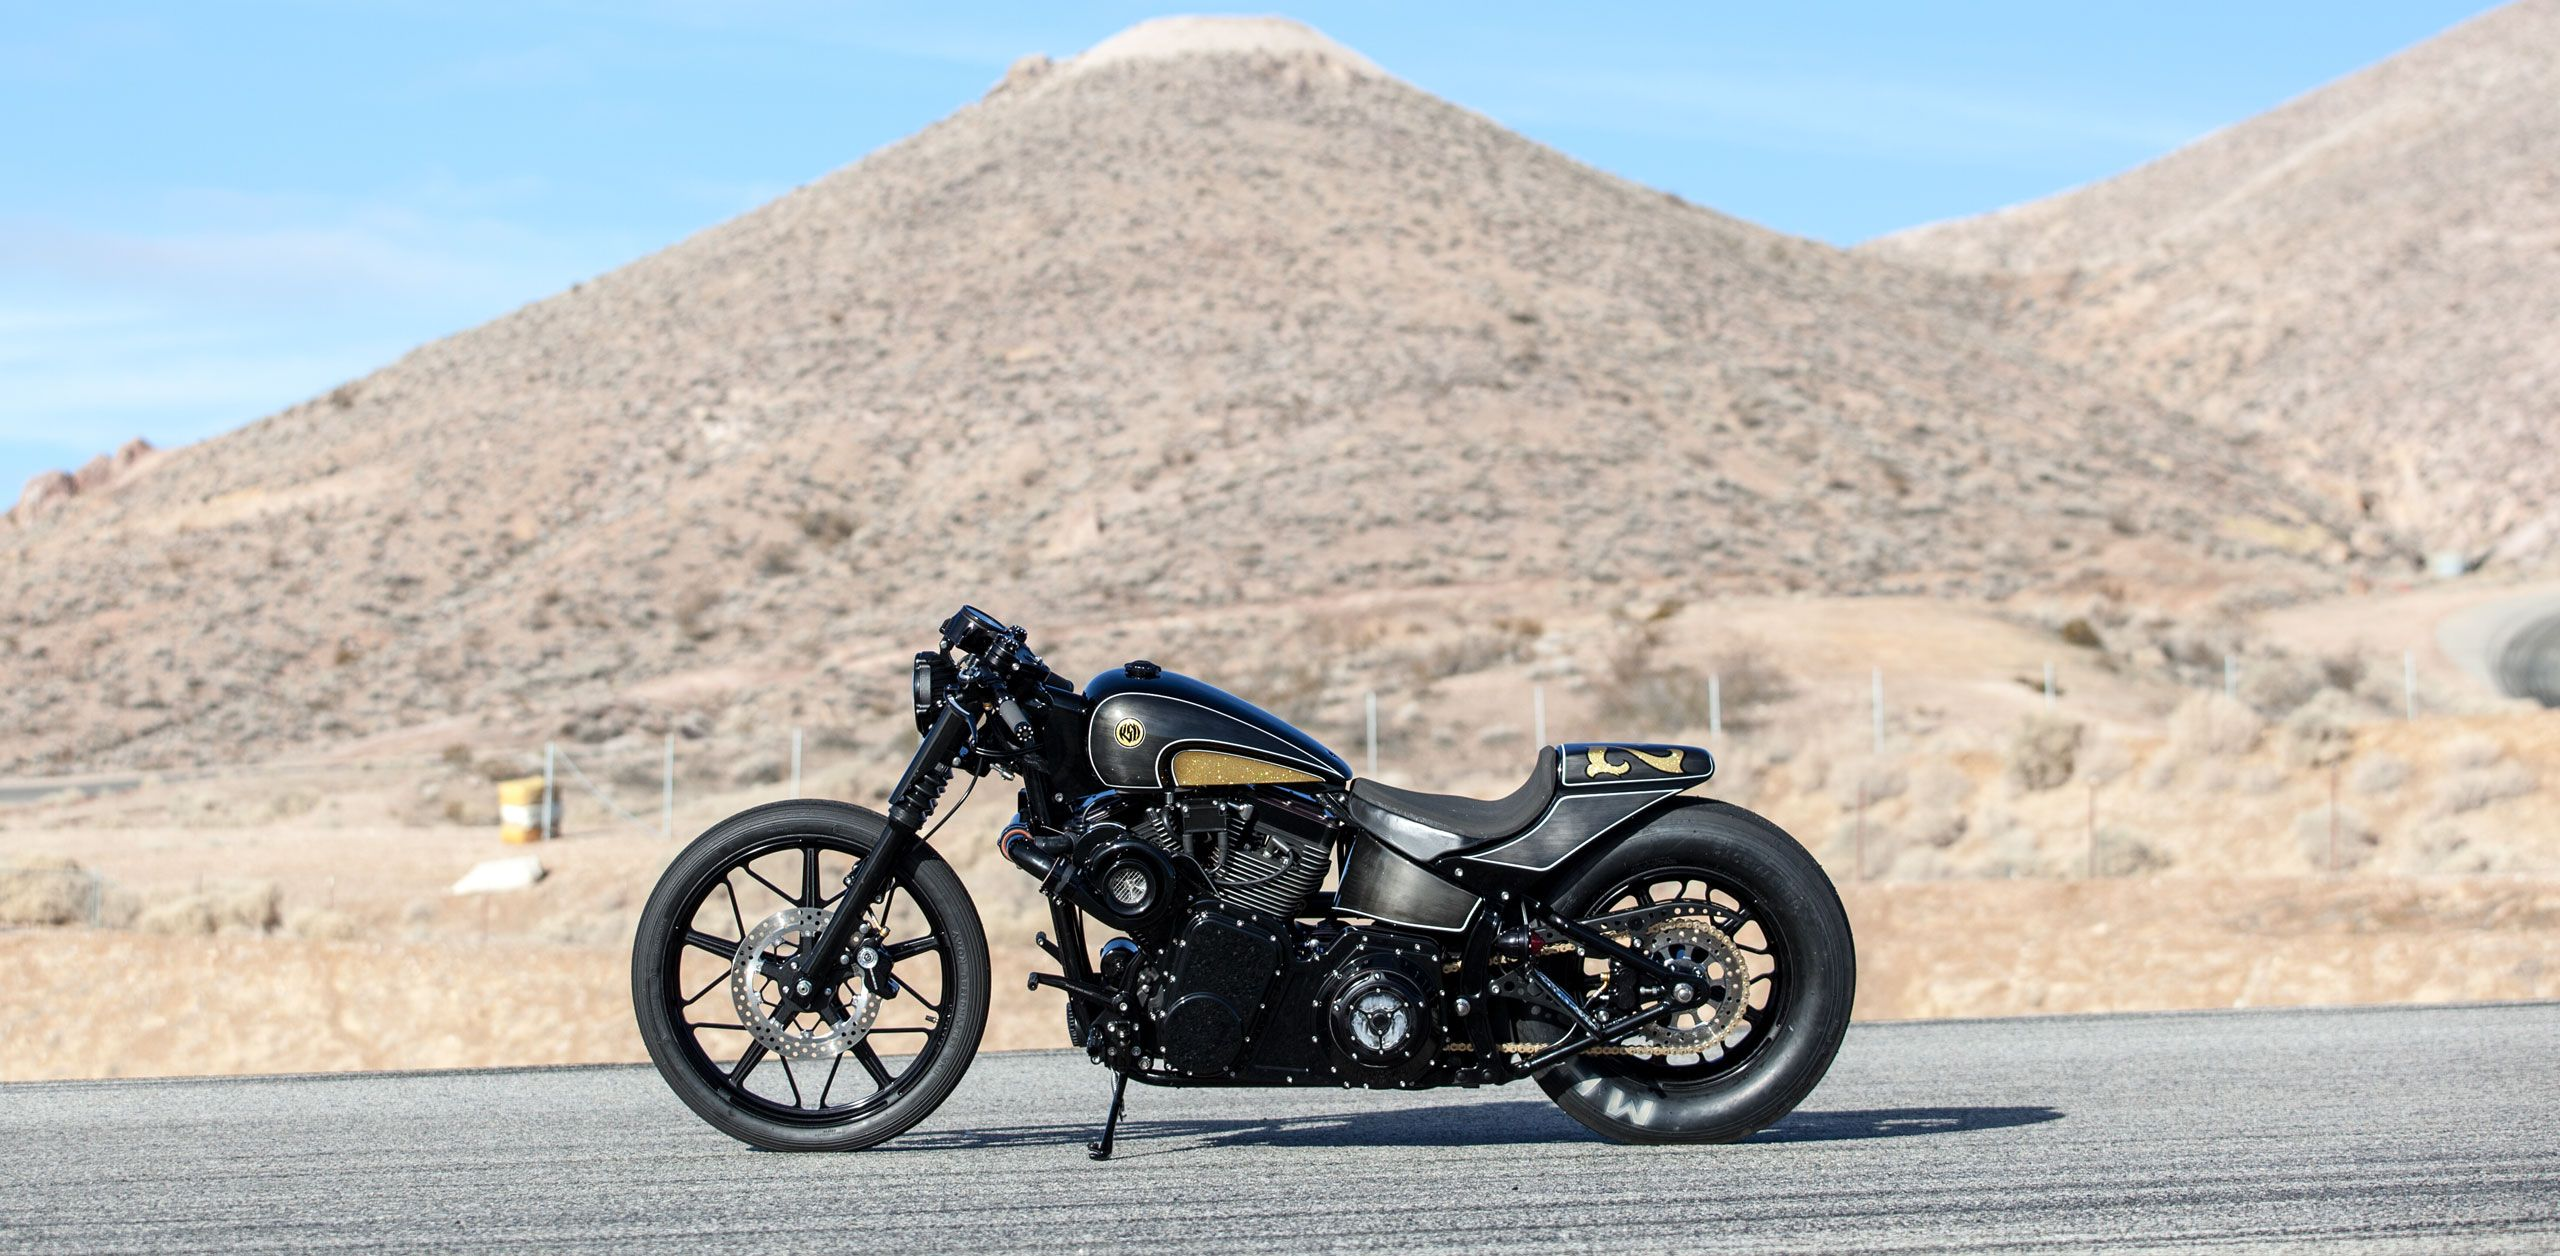 RSD Softail Bomber - Blog - Motorcycle Parts and Riding Gear - Roland Sands Design